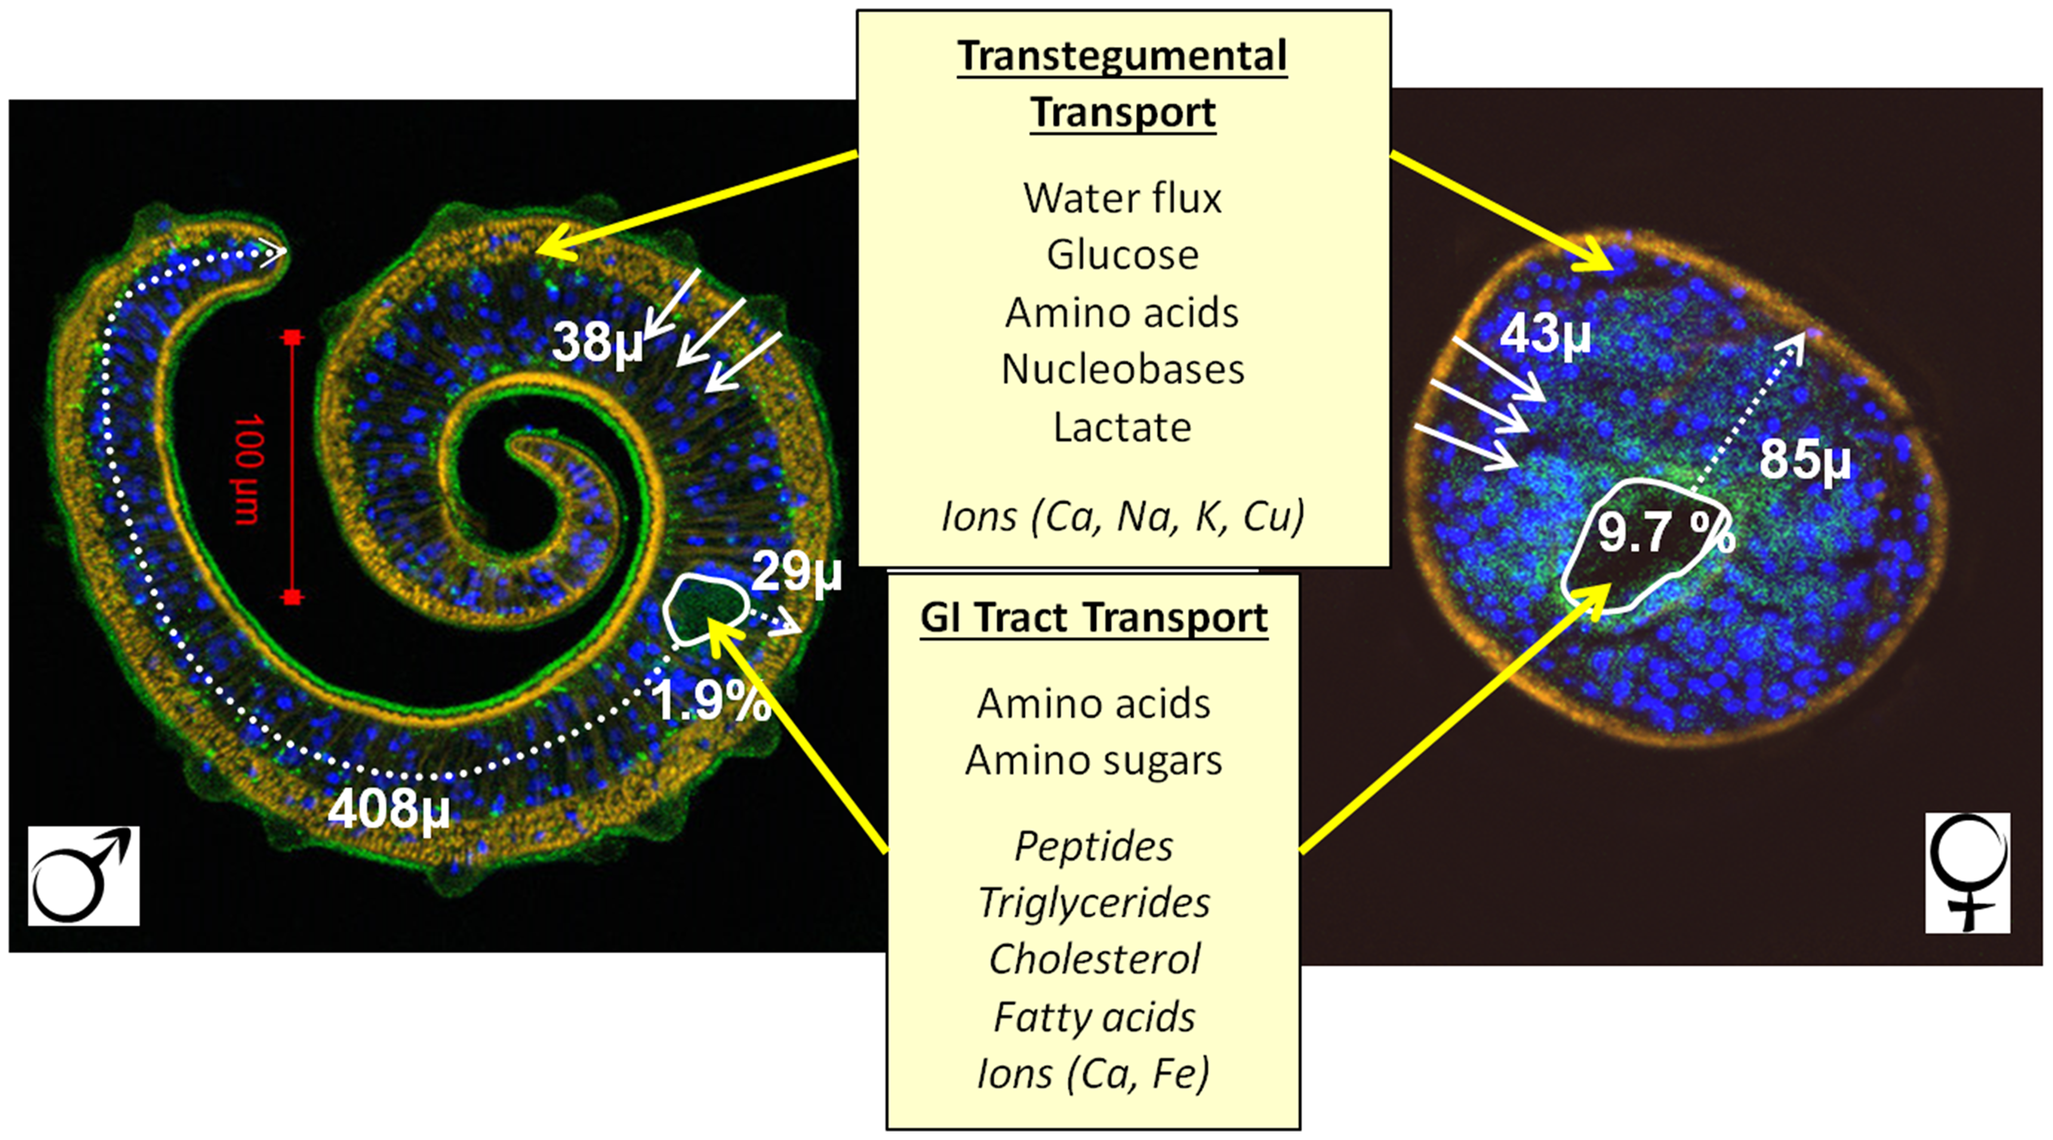 Pathways for diffusion of nutrients in male and female schistosomes.